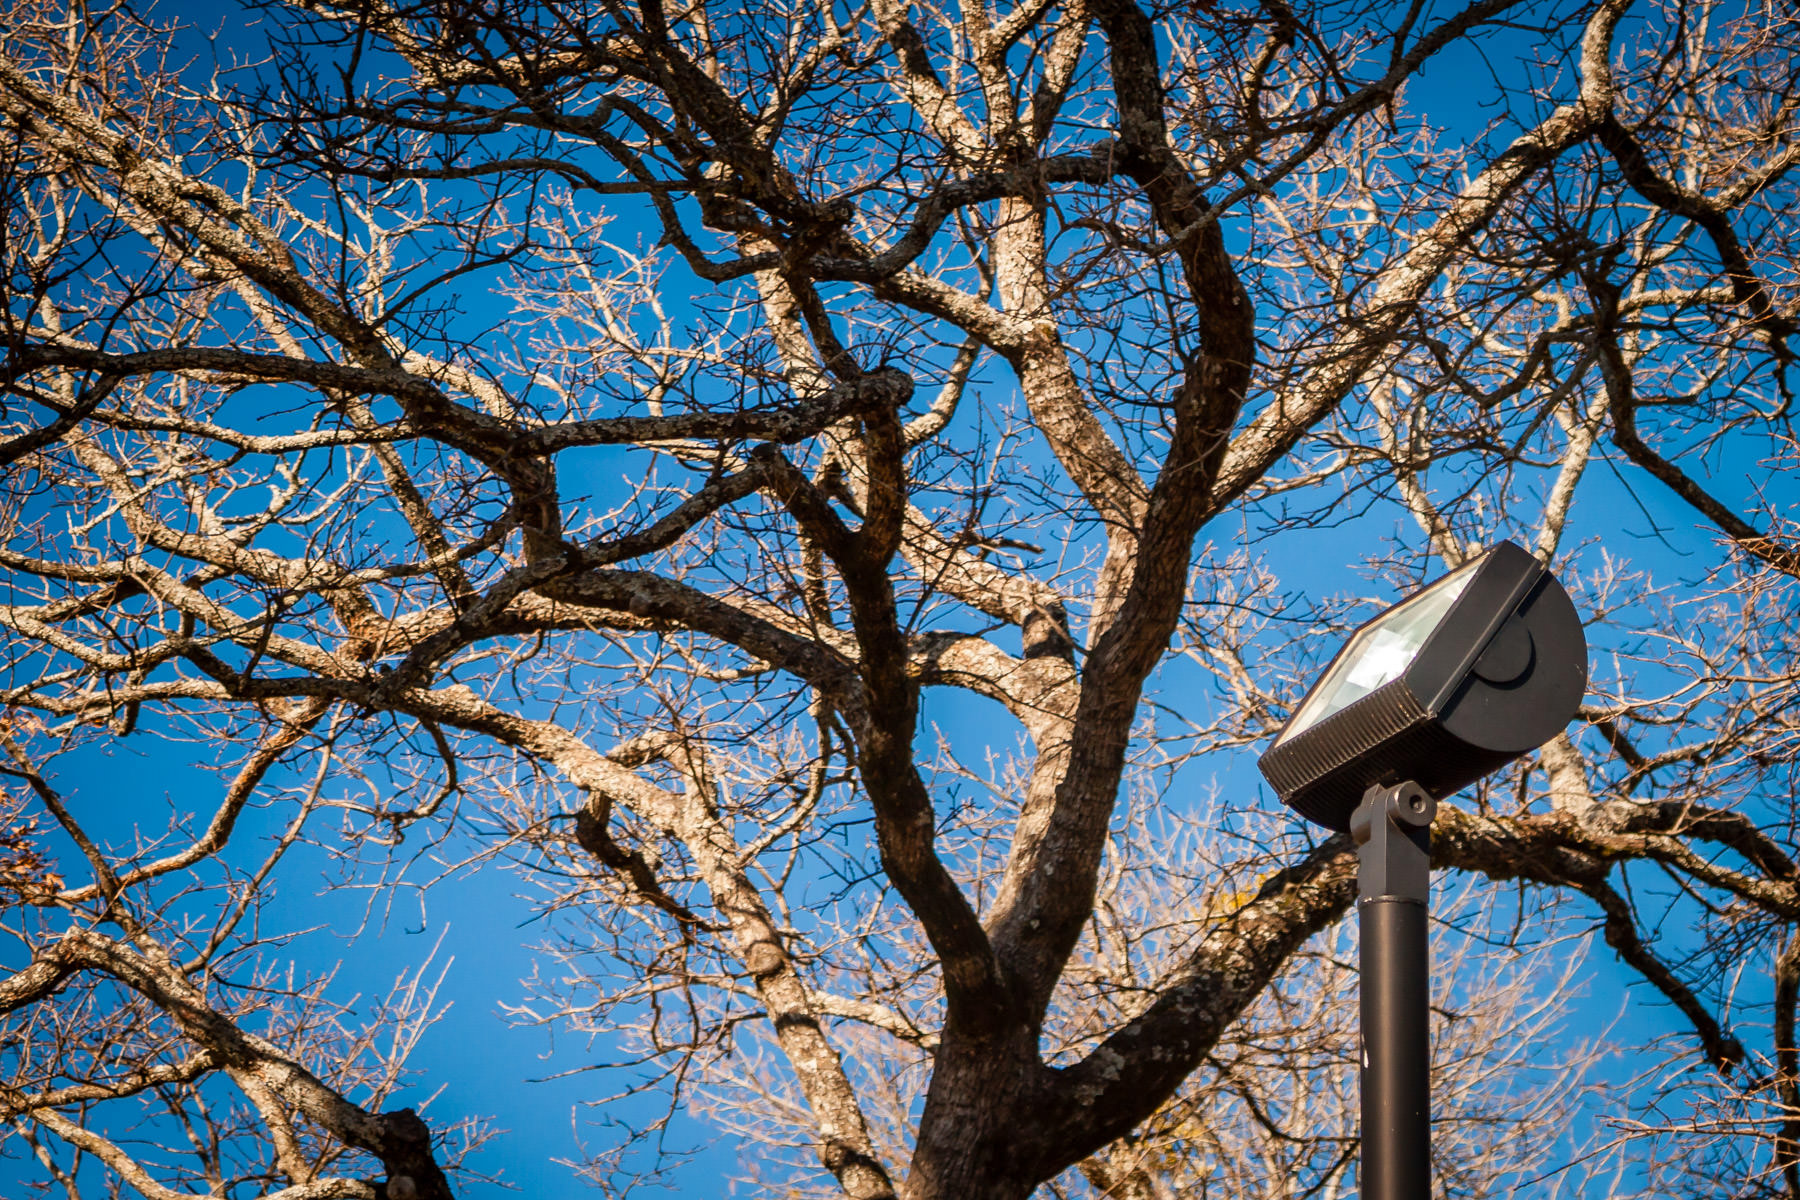 A light pole rises into trees on the campus of the University of Texas at Tyler.